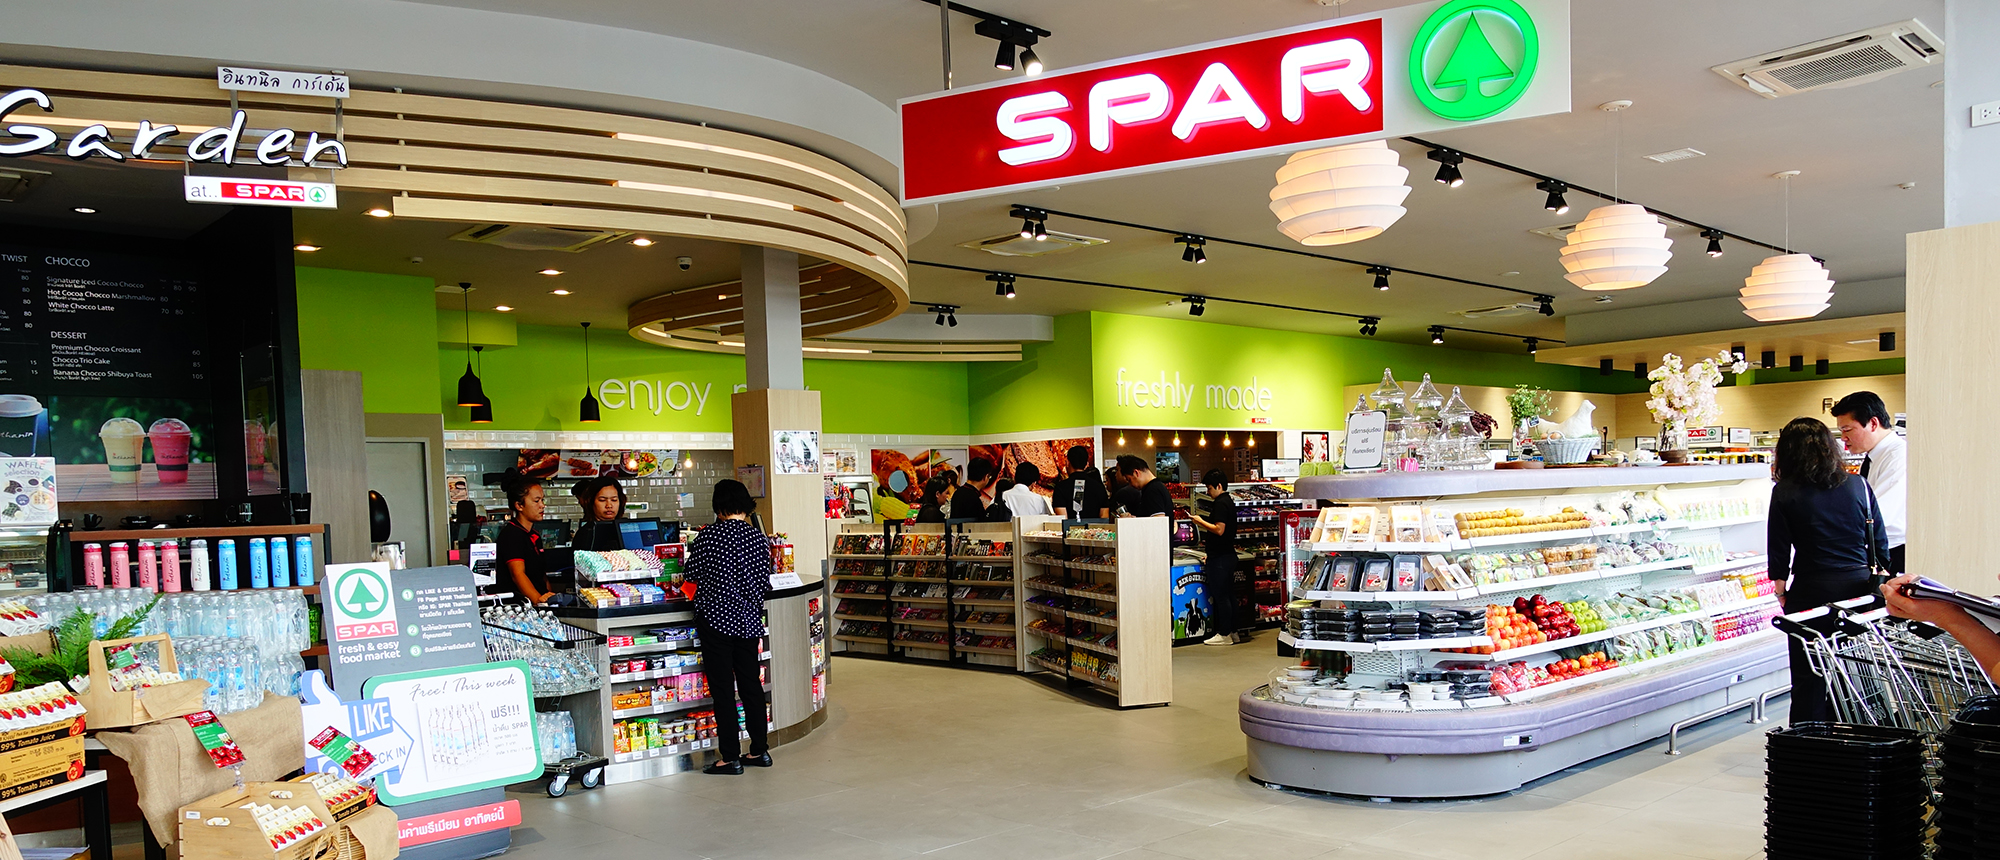 formulation of strategy for spar zambia Spar zambia ltd is a joint venture established between innscor international of zimbabwe and platinum gold zambia ltd the company was registered in 2003 and commenced trading in december of that year with the first store at arcades shopping centre, in lusaka.